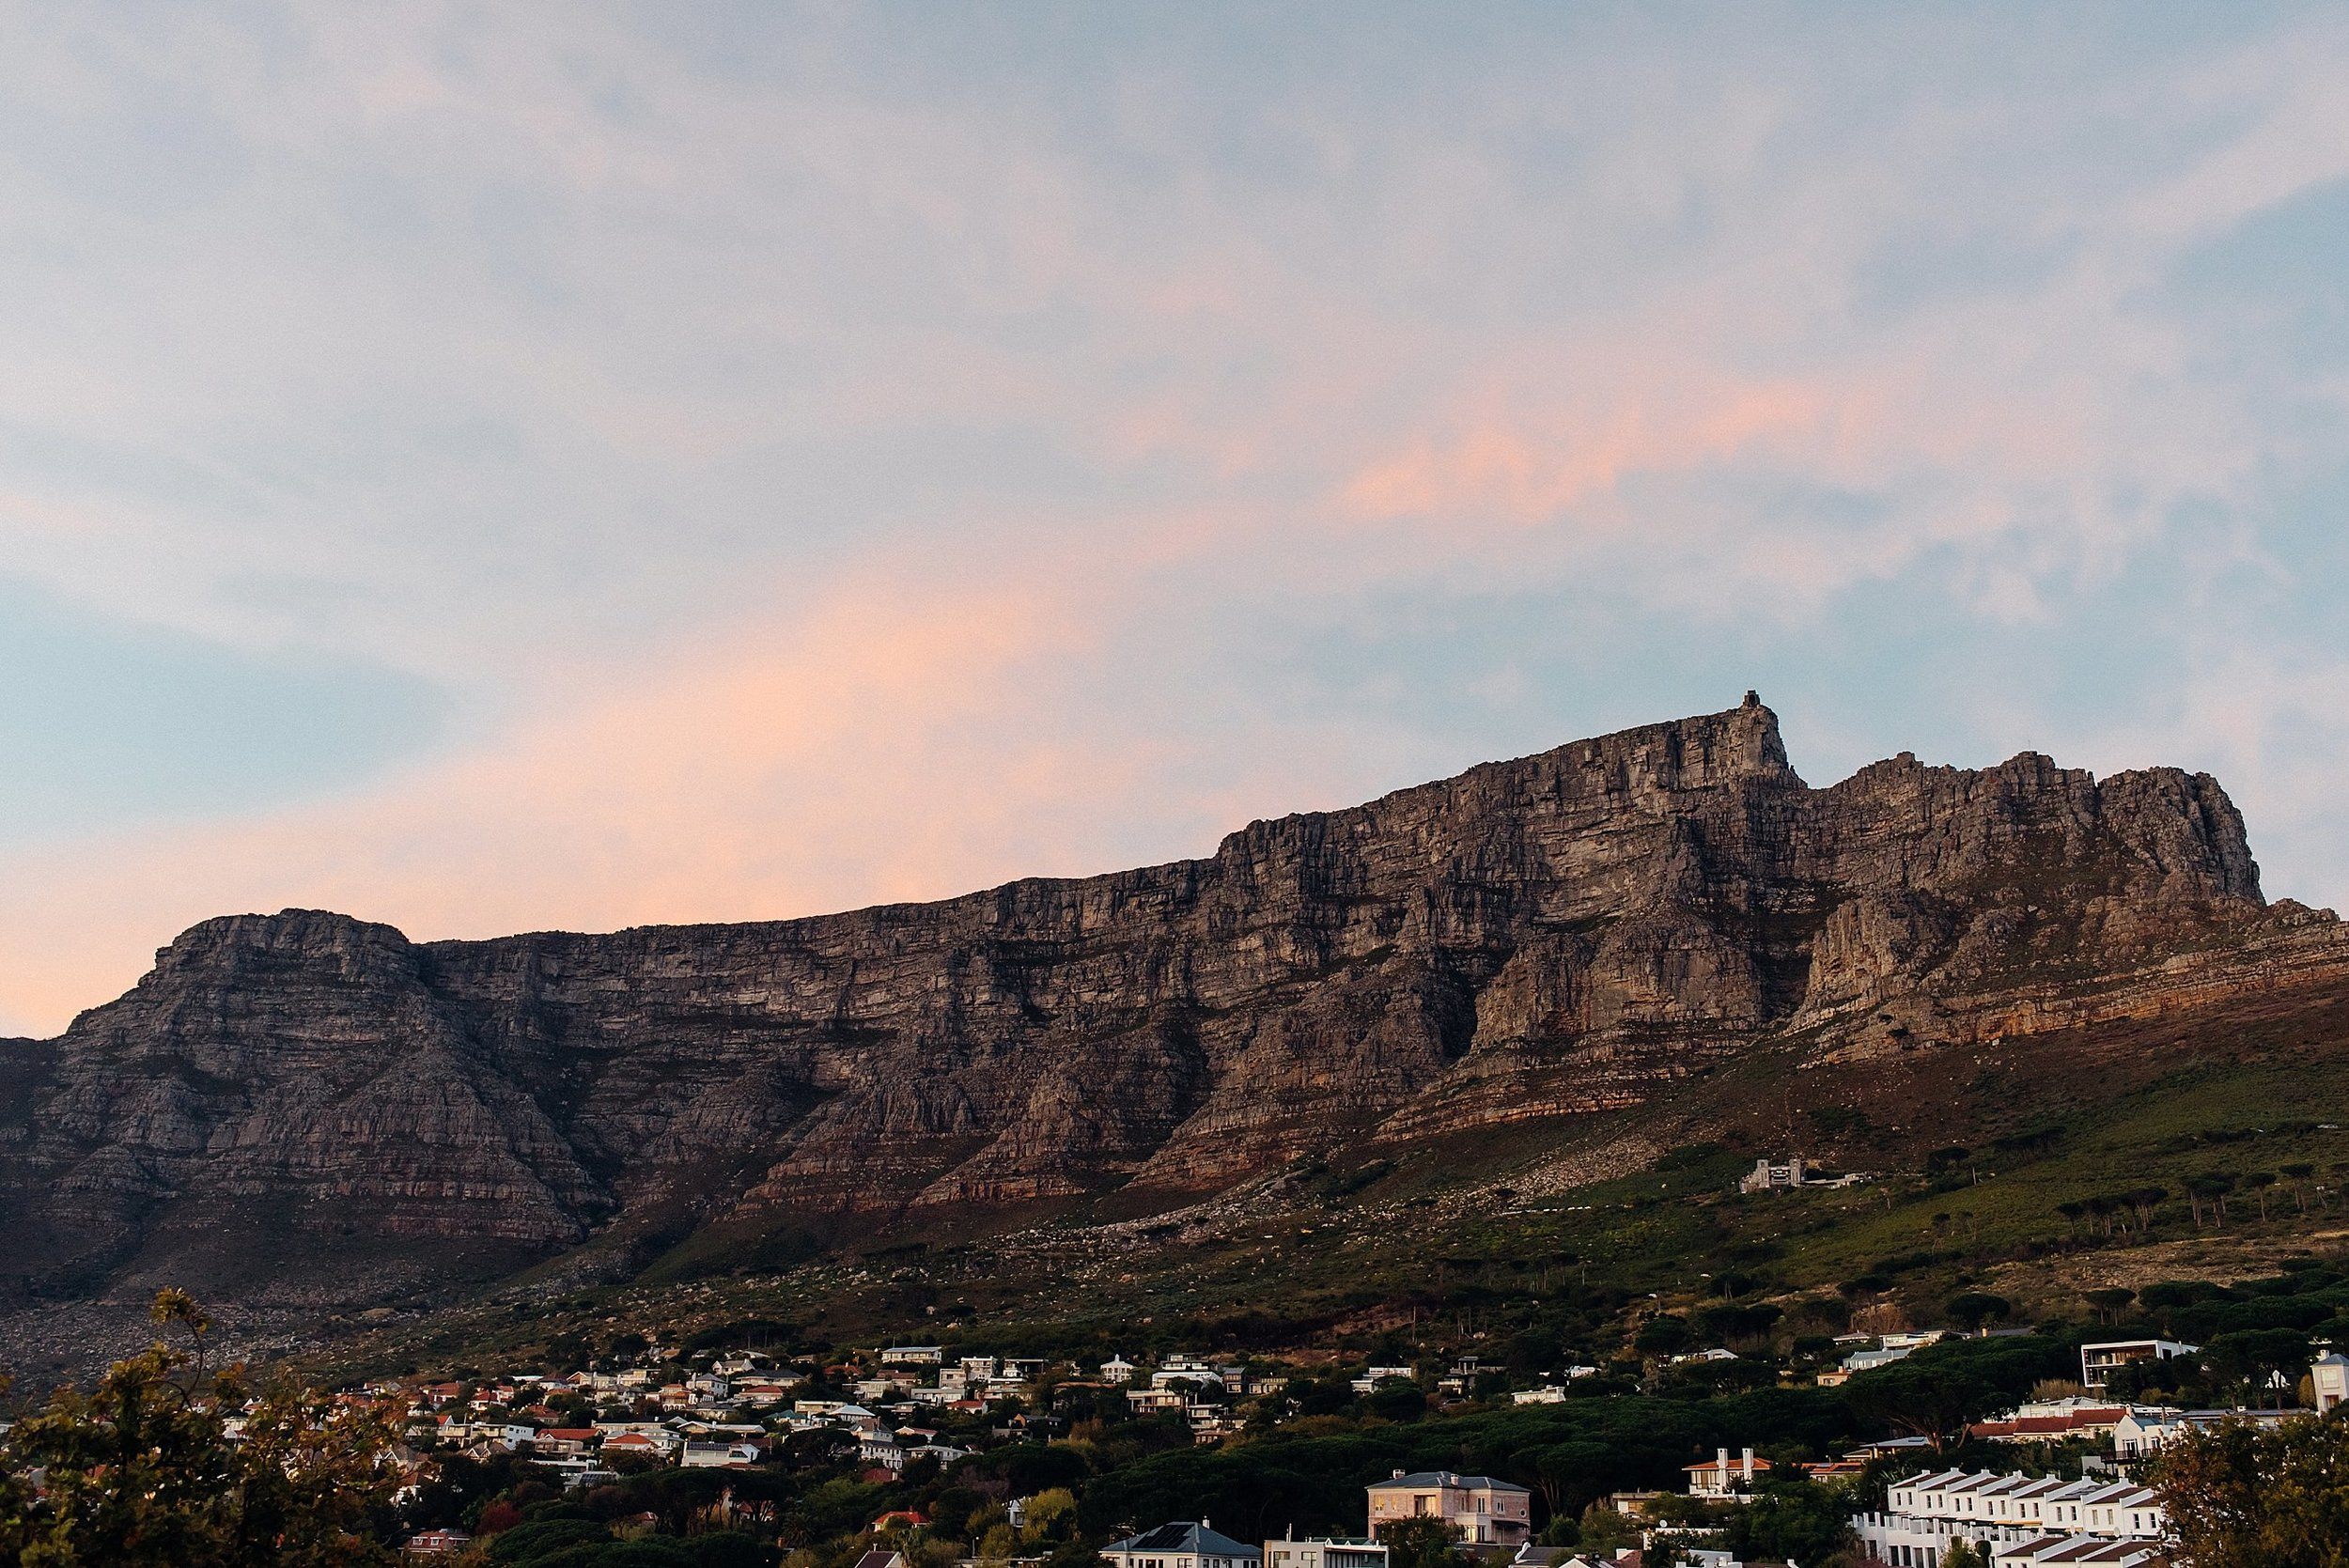 Cape Town, South Africa Travels Day 2 - BLOG - Ali and Batoul Photography-3.jpg